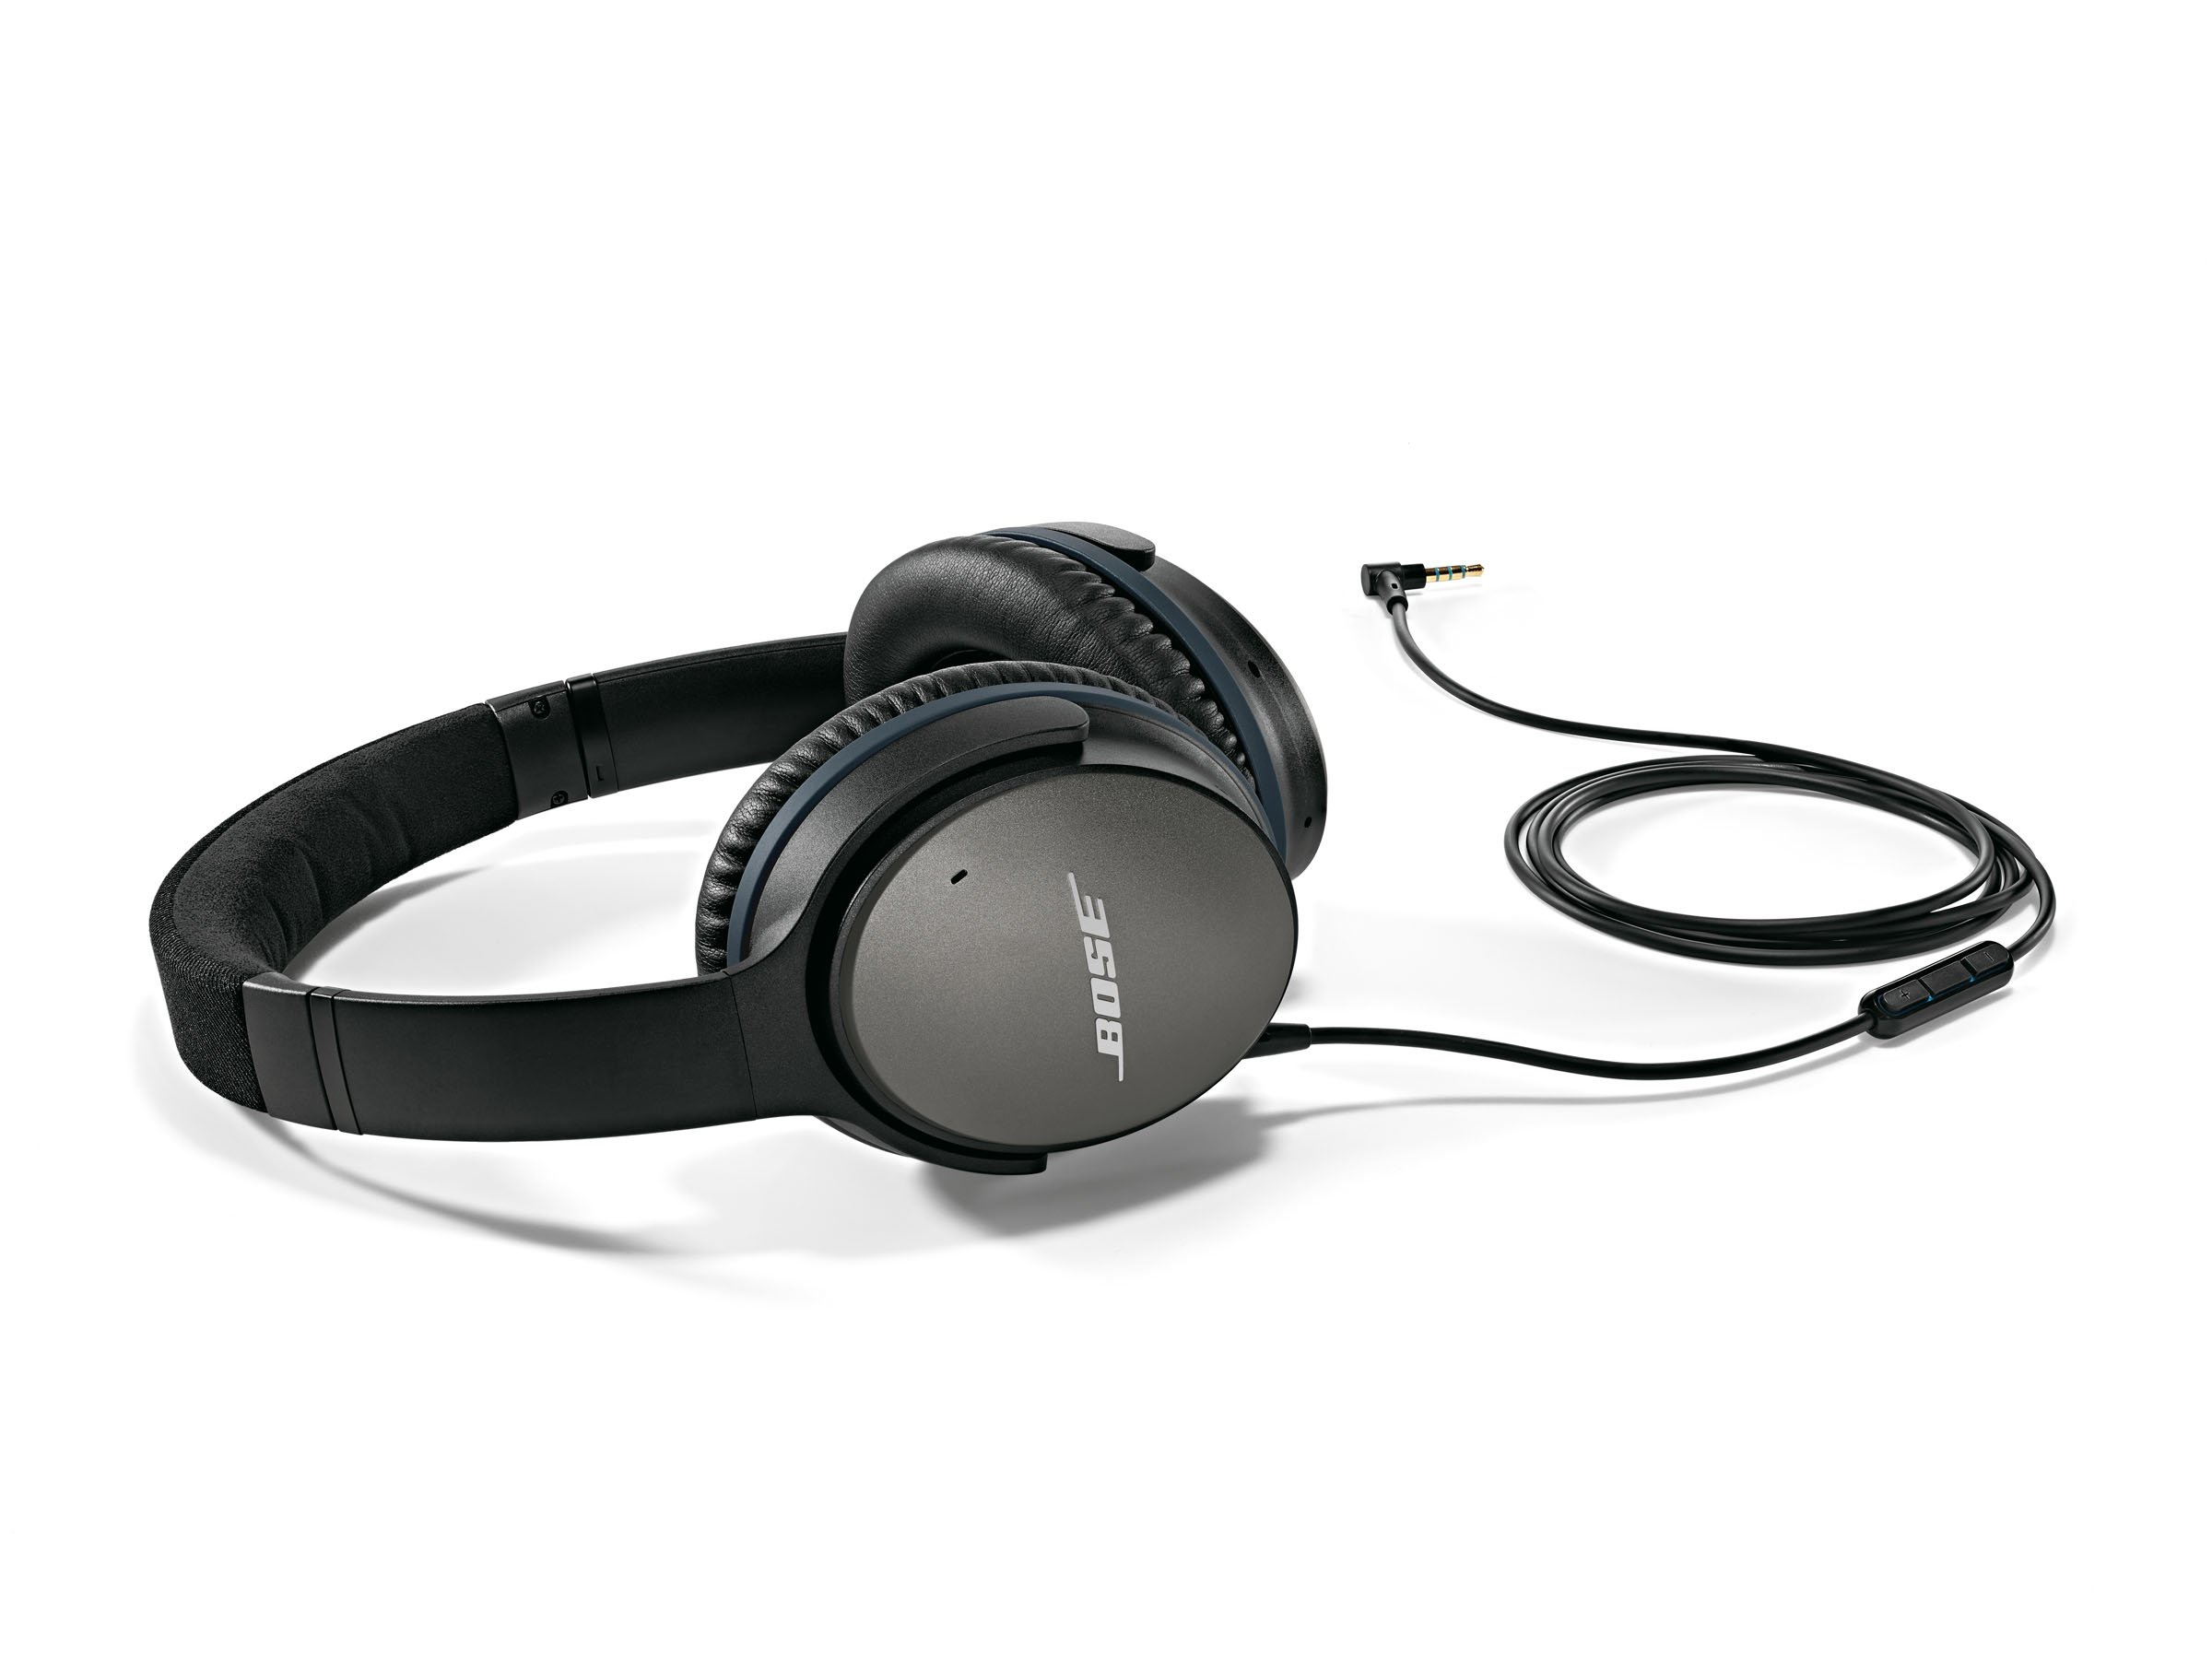 Bose QuietComfort 25 Acoustic Noise Cancelling Headphones for Apple devices - Black (wired, 3.5mm) by Bose (Image #16)